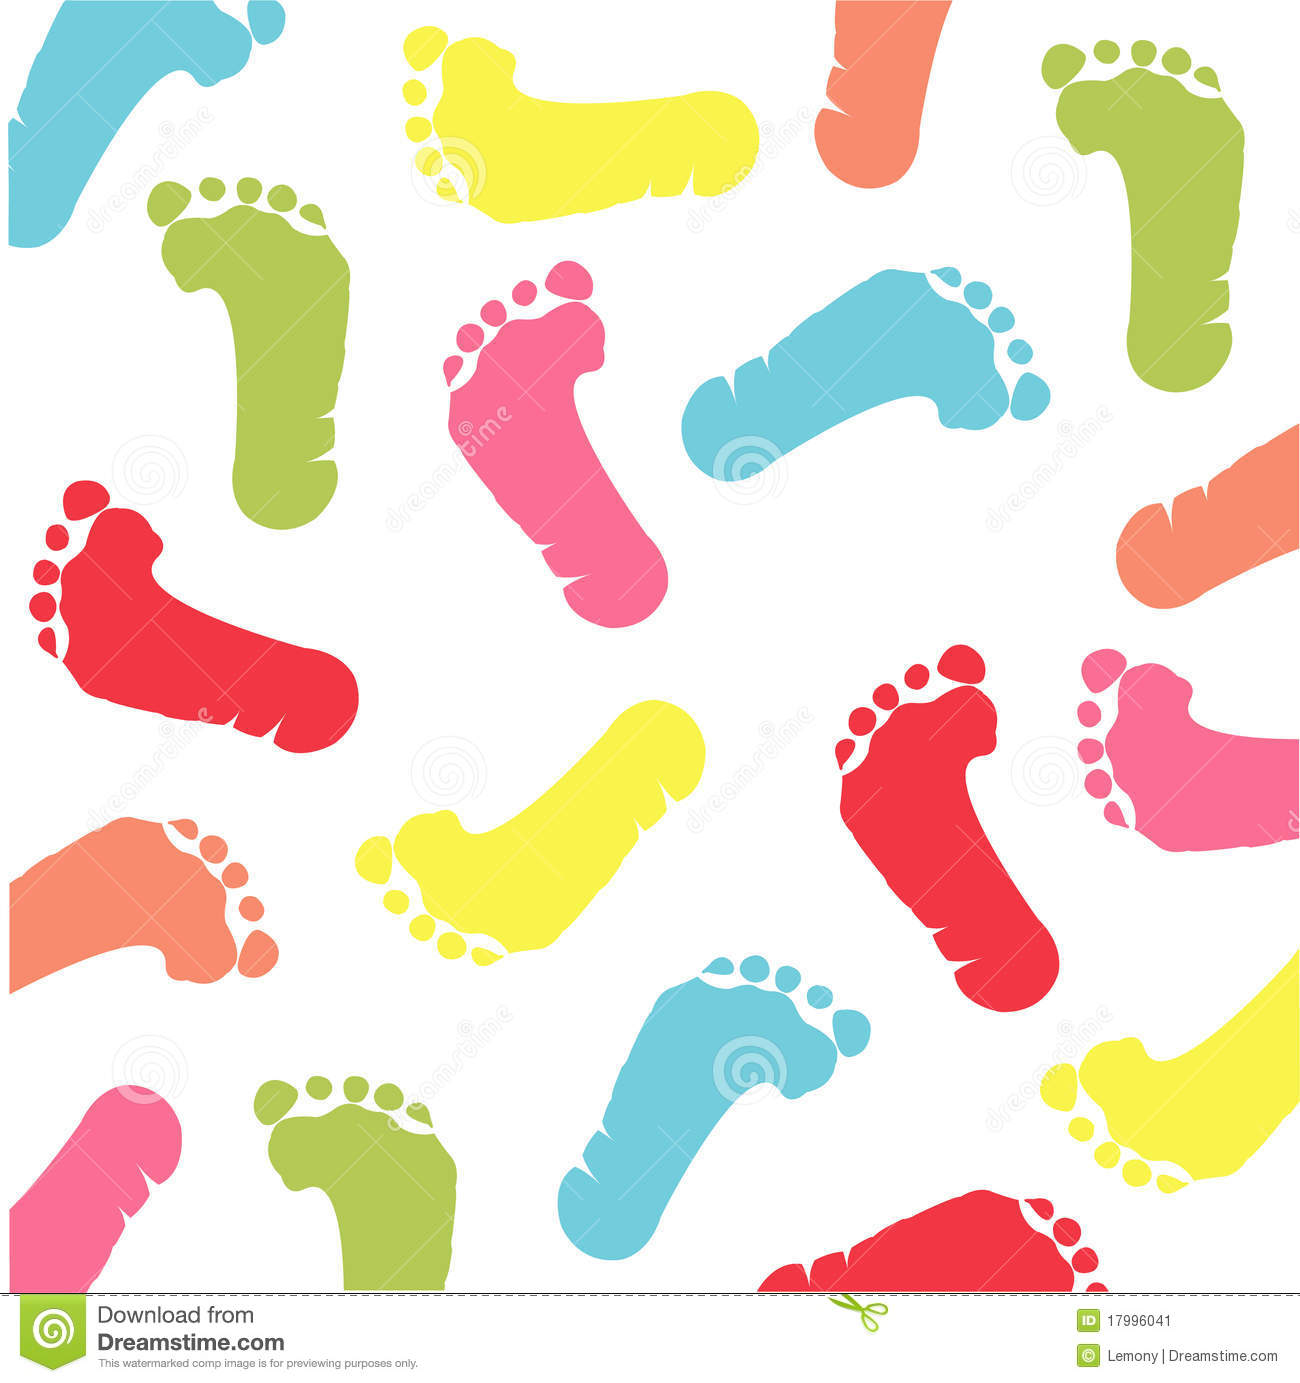 Colorful footprint pattern on the white background.